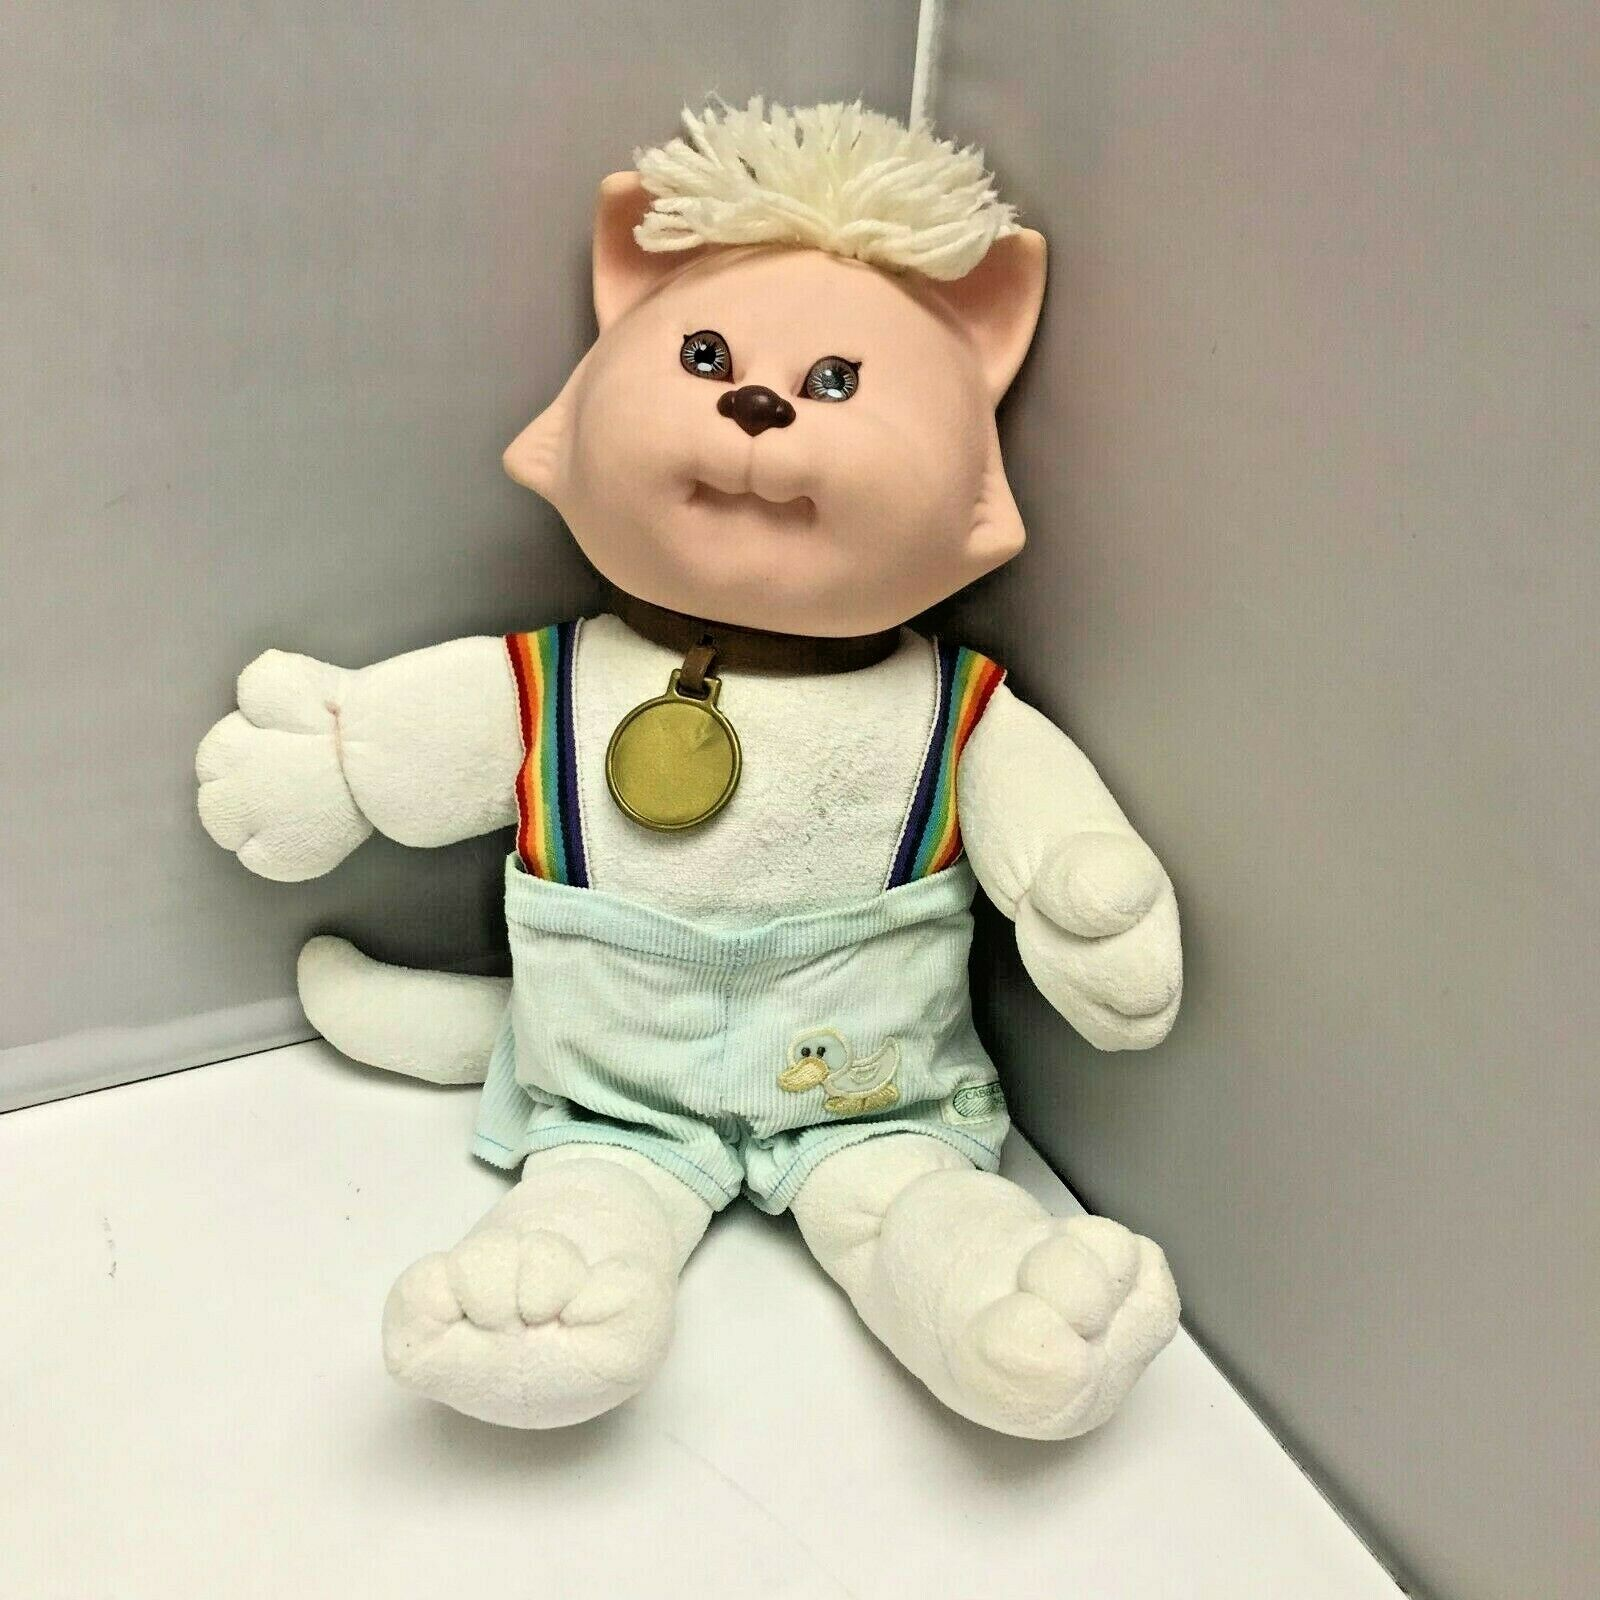 Vintage Cabbage Patch Kids Koosas Rainbow Suspenders Cat Plush Stuffed Animal - $99.99